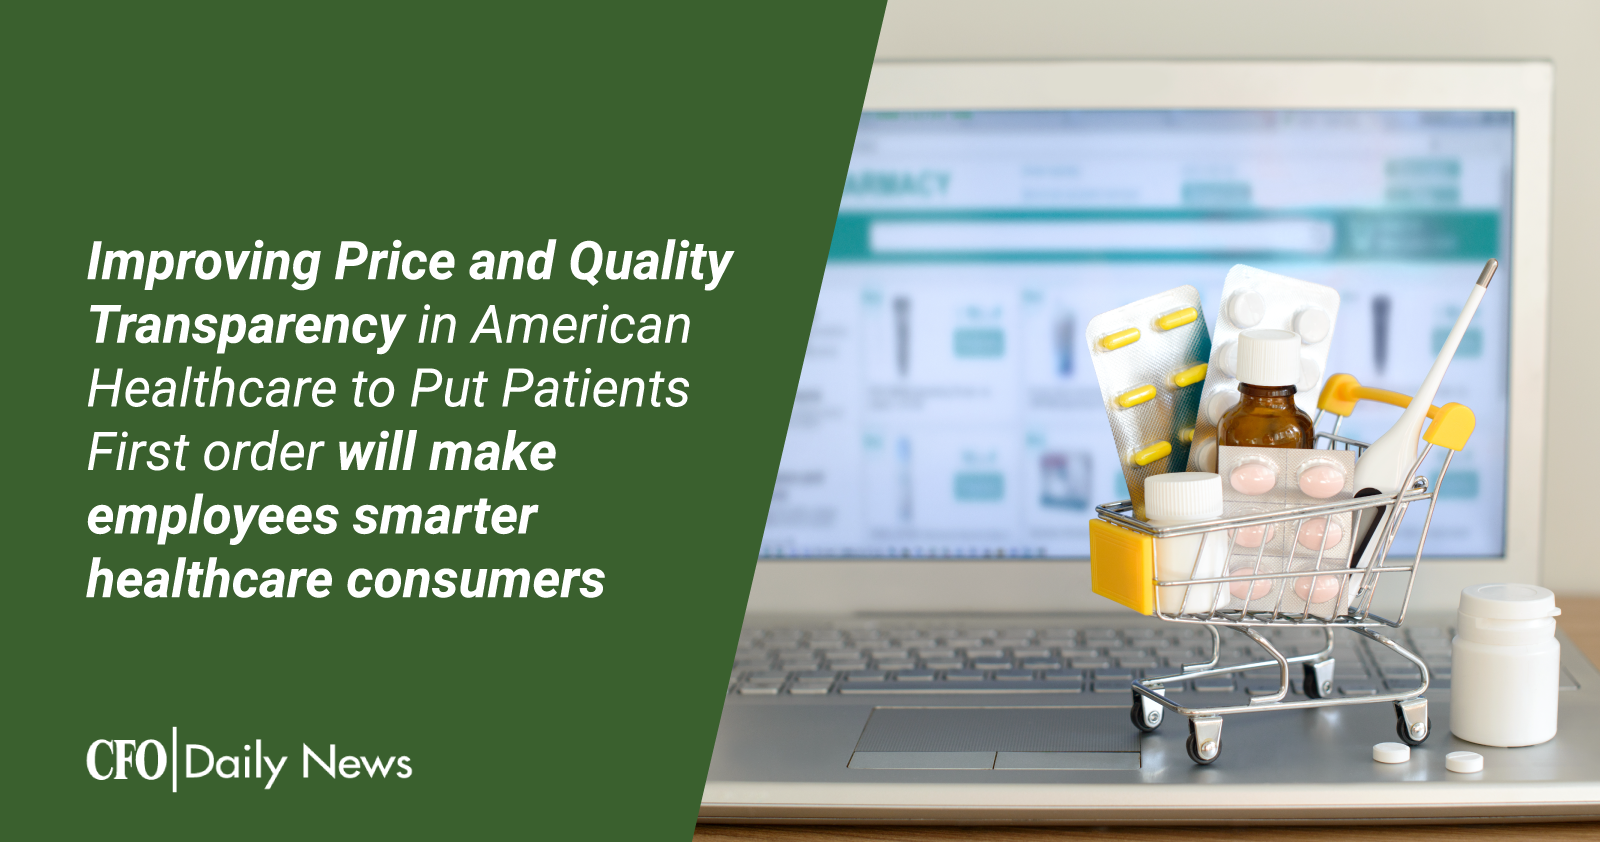 Improving Price and Quality Transparency in American Healthcare to Put Patients First order will make employees smarter healthcare consumers